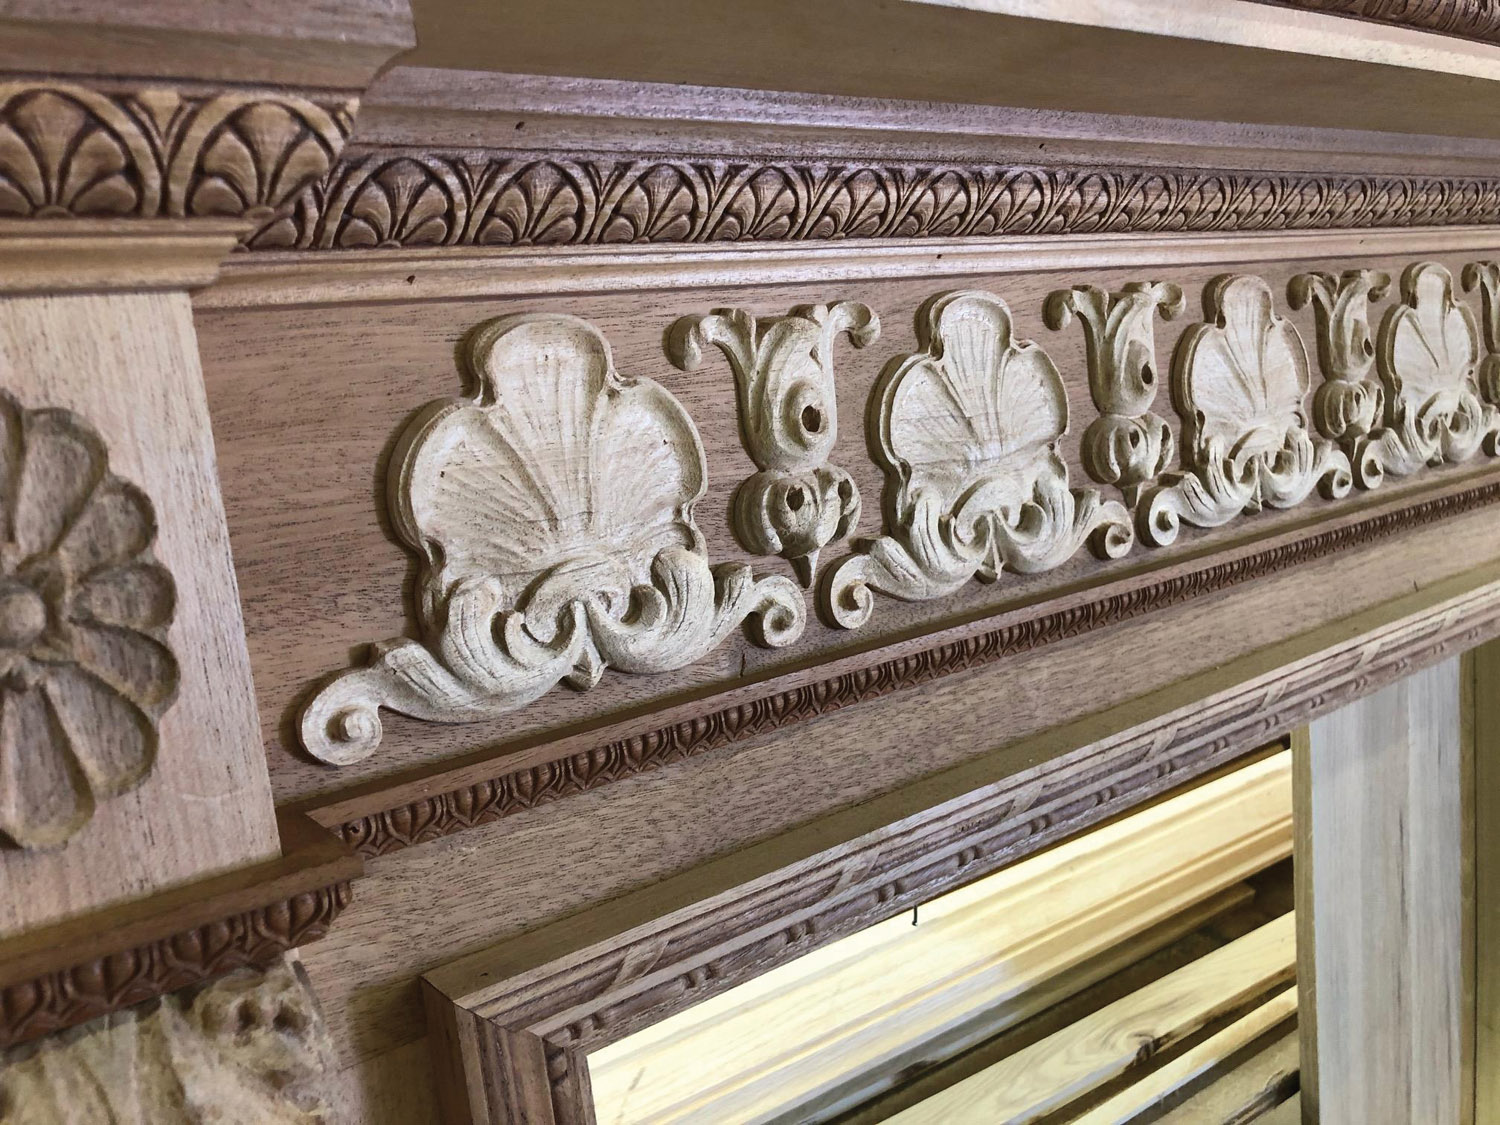 A mantel with hand-applied decoration represents hours of work.